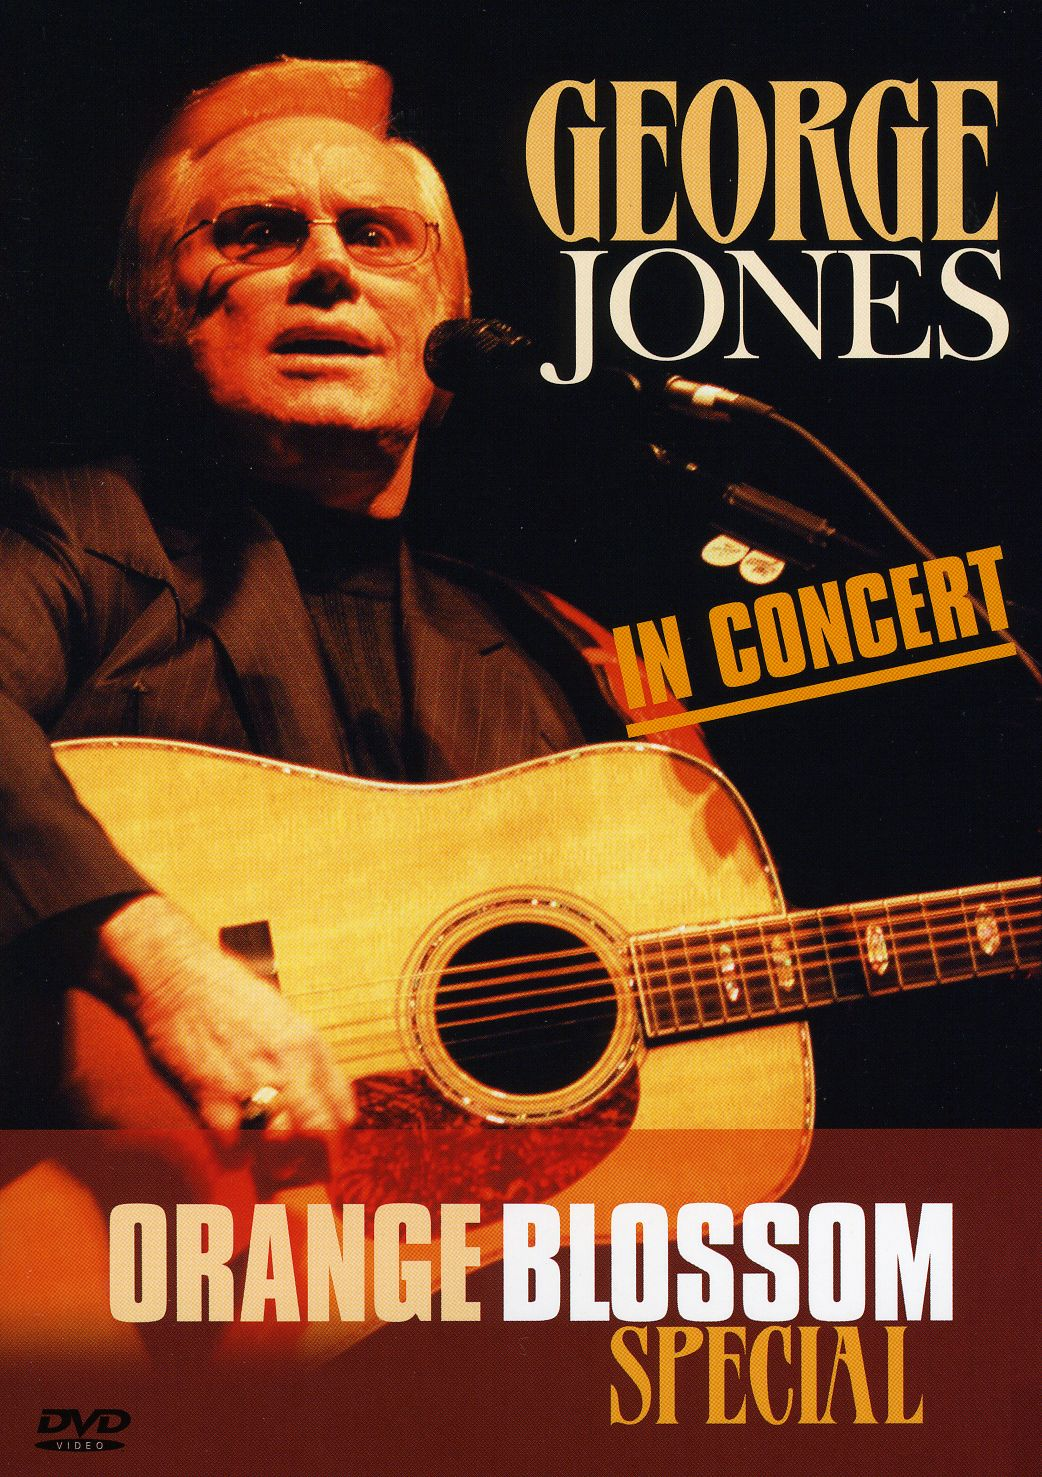 Georges Jones: In Concert - Orange Blossom Special